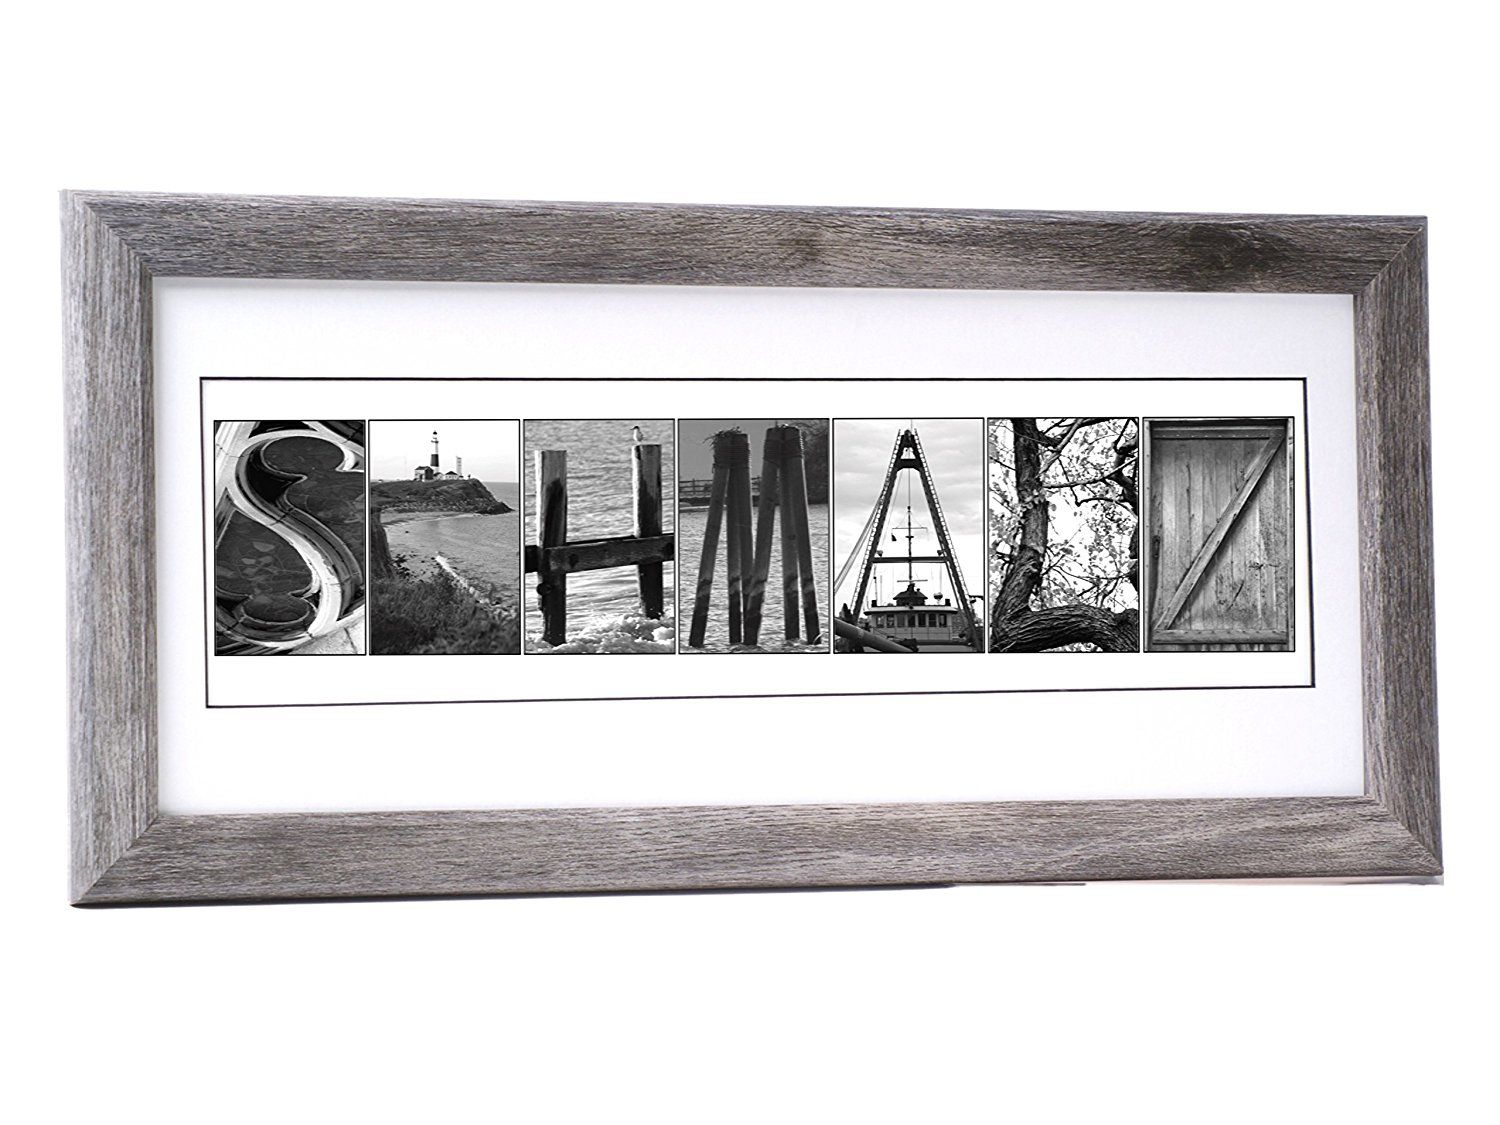 Creative Letter Art Personalized 12 by 26 inch Framed Sign in Beach ...